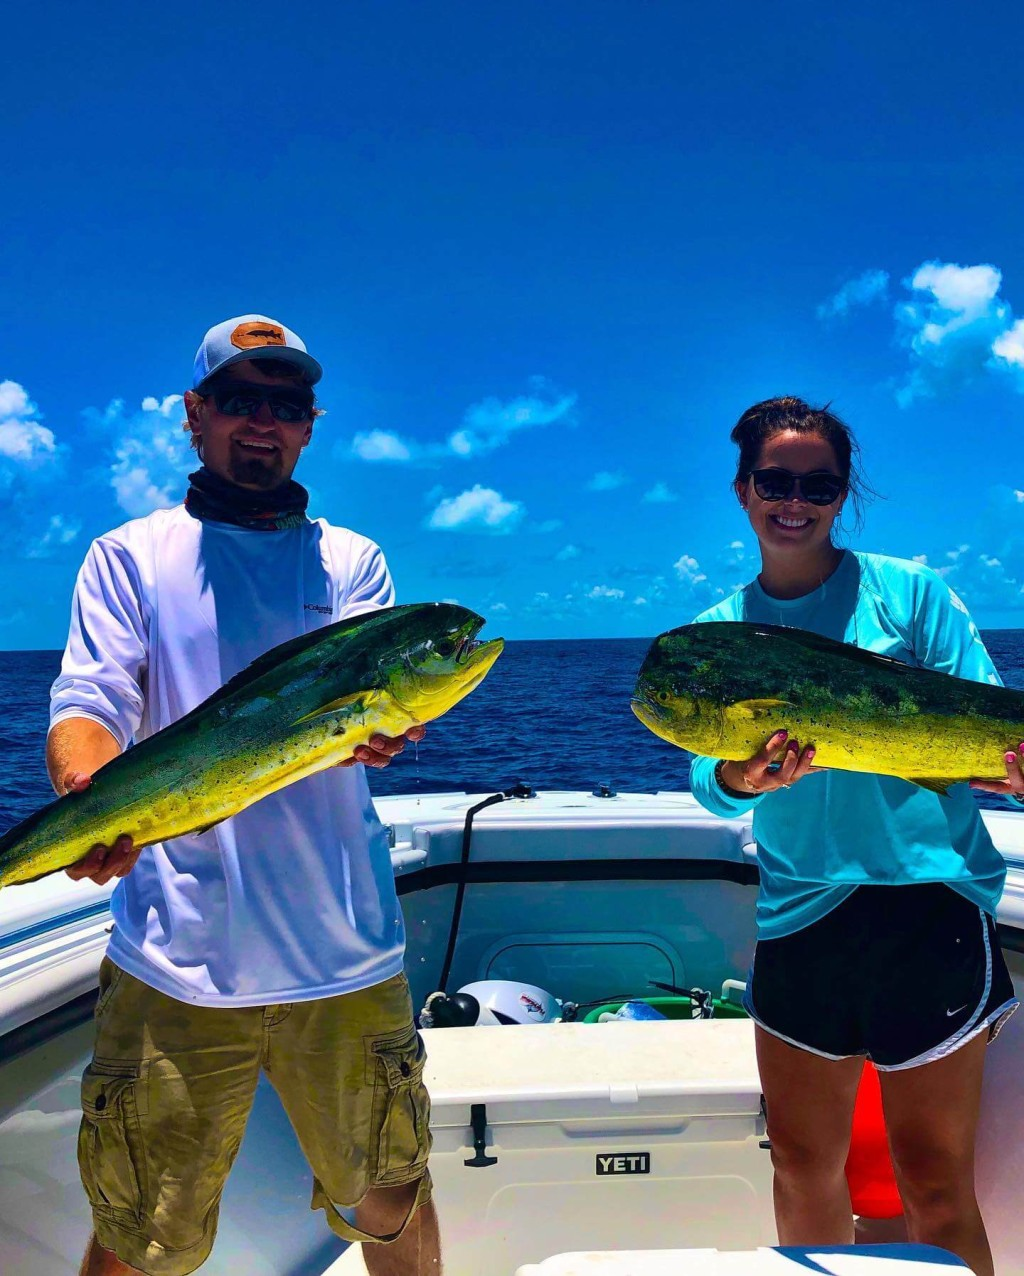 Full Day, 3/4 Day or ( Half-day AM/PM Option ) Fishing Trip | Captain Experiences